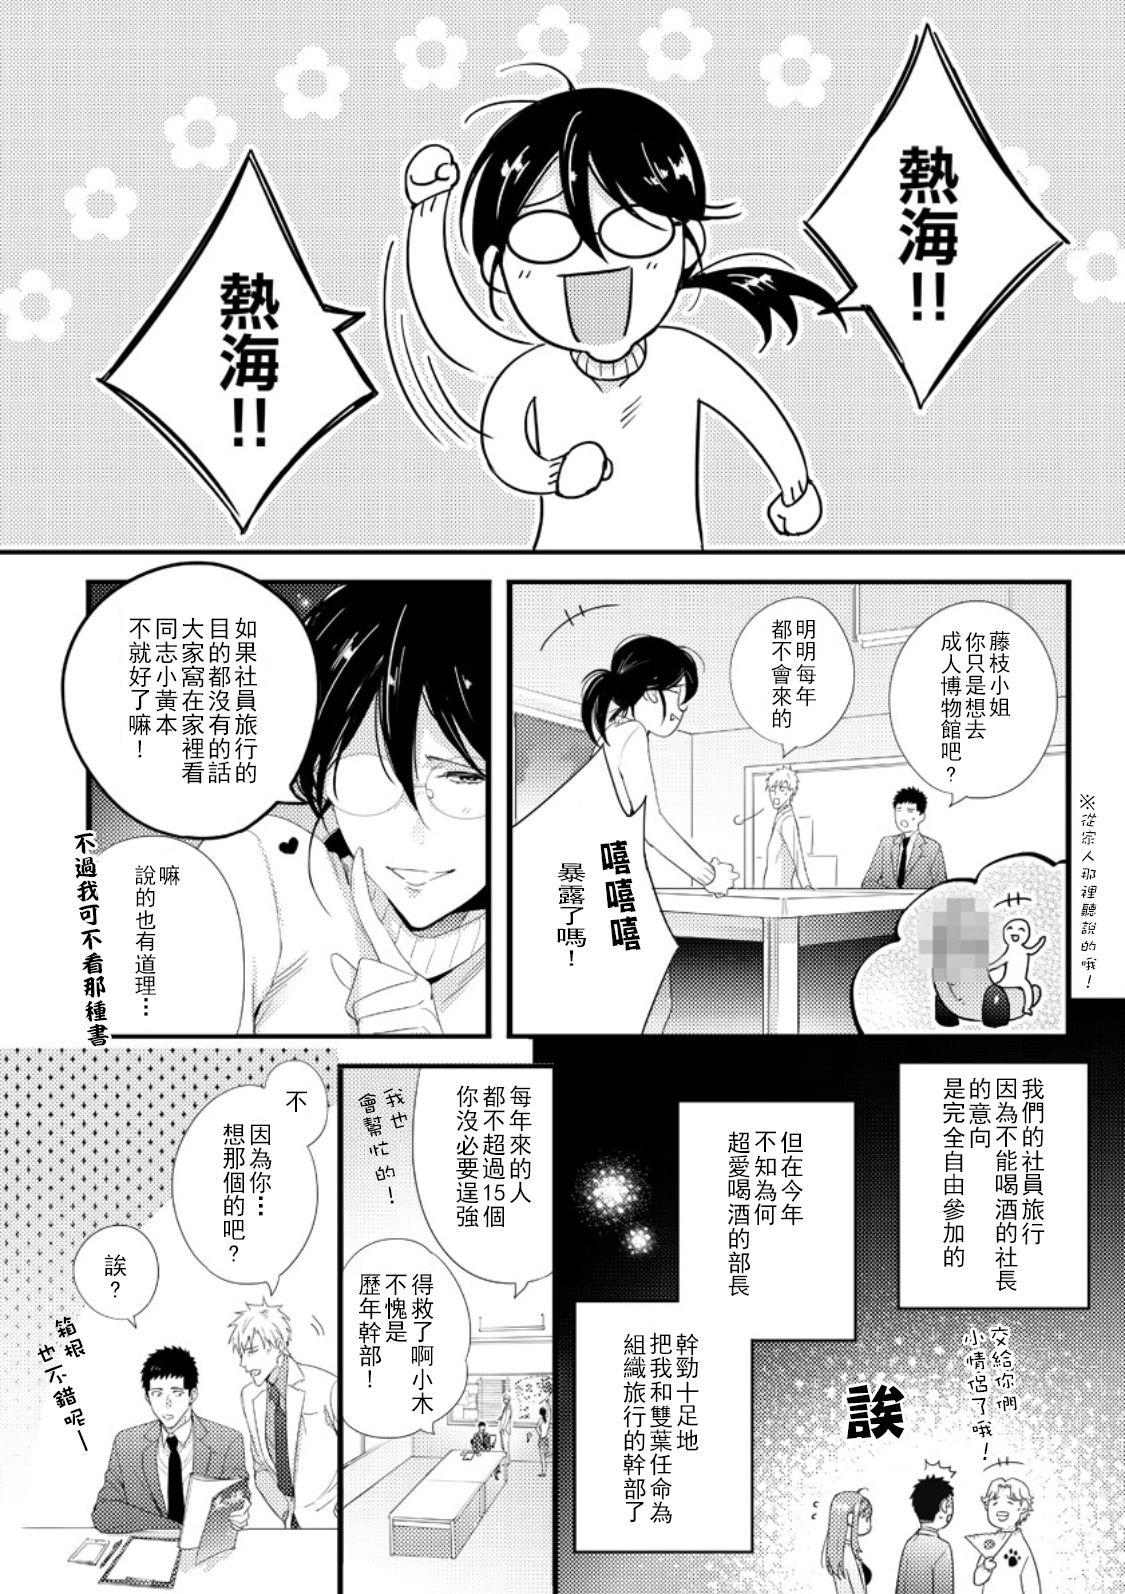 Please Let Me Hold You Futaba-San! Ch.1 3